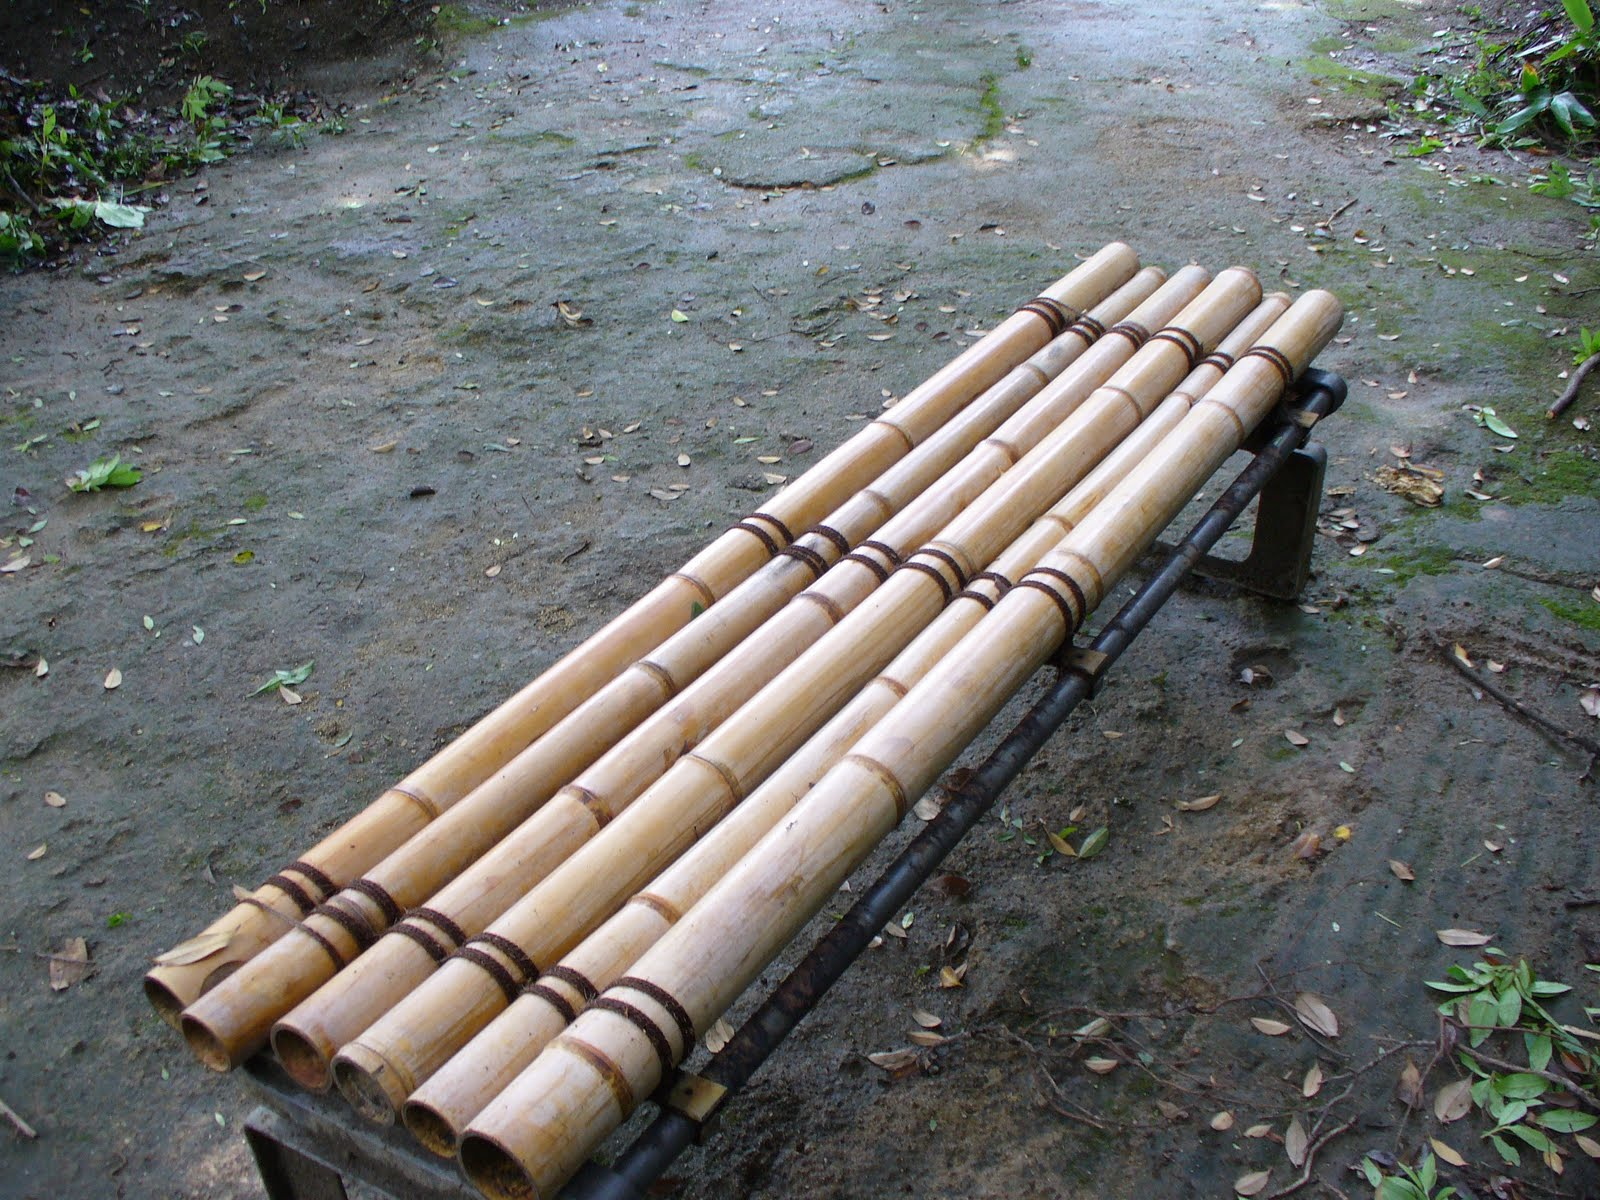 Pvc Pipes Painted To Look Like Bamboo